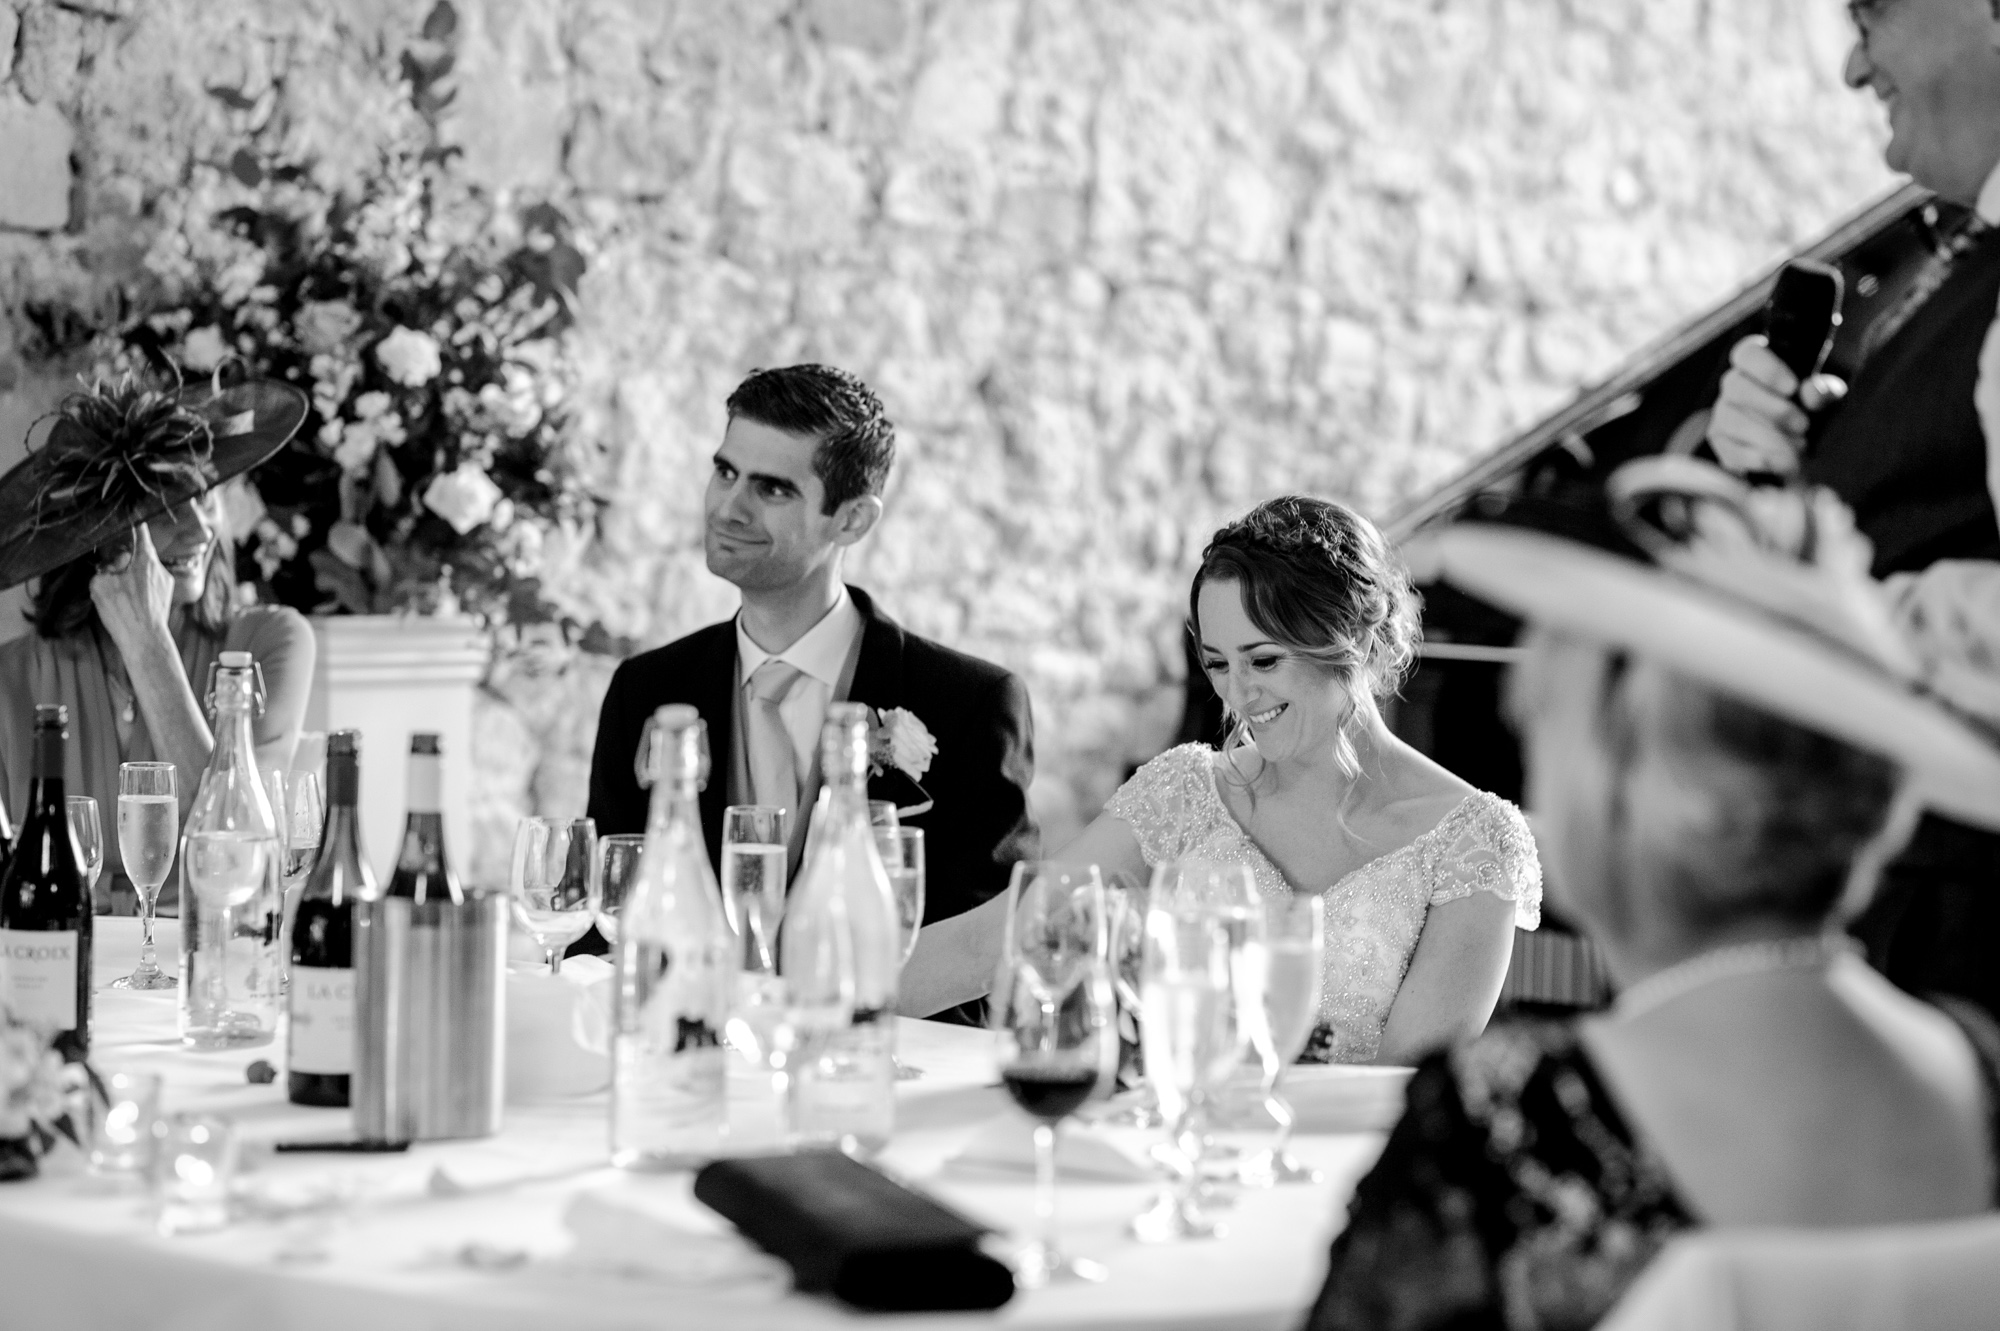 Notley Barn Wedding 26.10.18 24.jpg